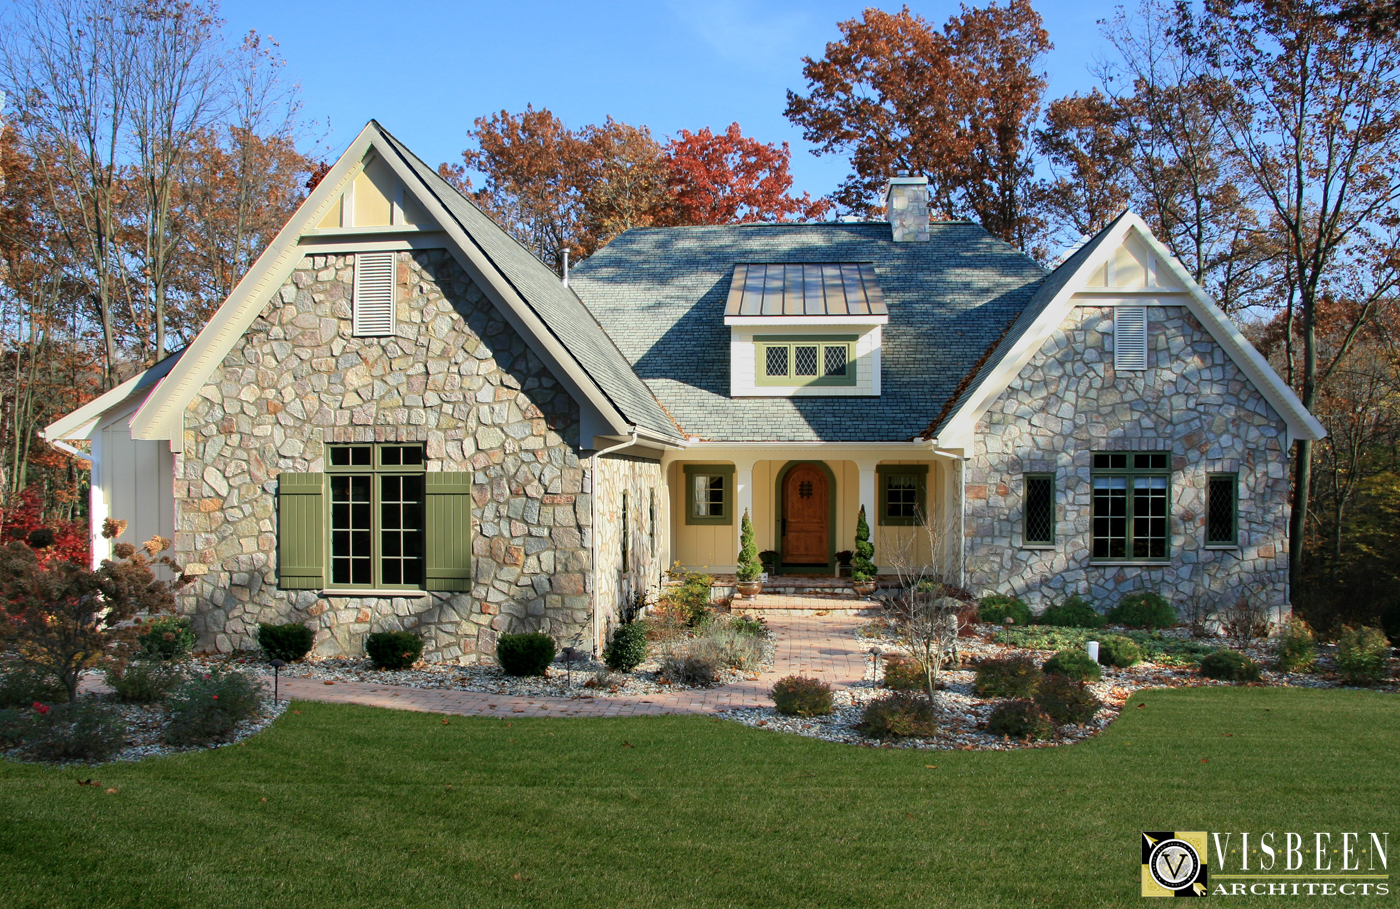 One level french country home plans - Home design and style